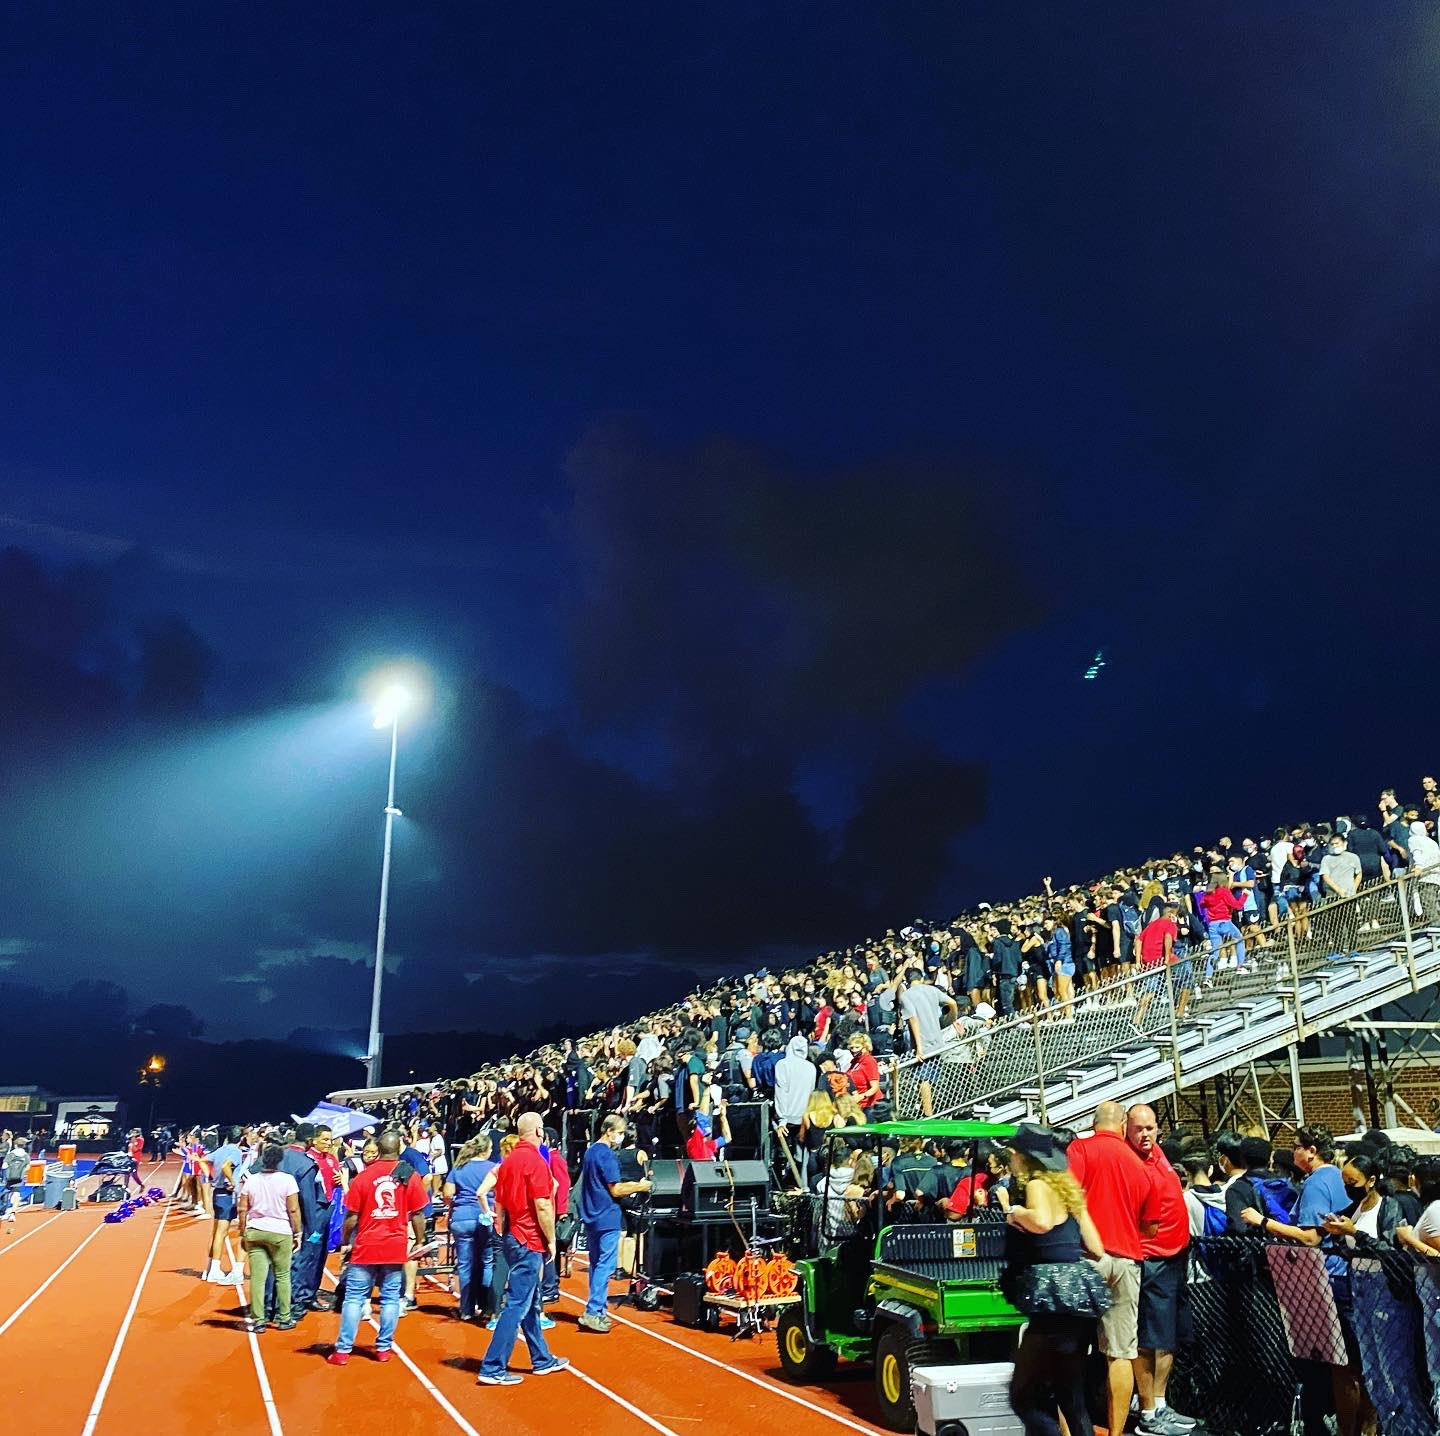 The sold-out crowd cheered the Alexandria Titans to victory Friday night under the new lights. (Photo: Jessica E. Hillery)